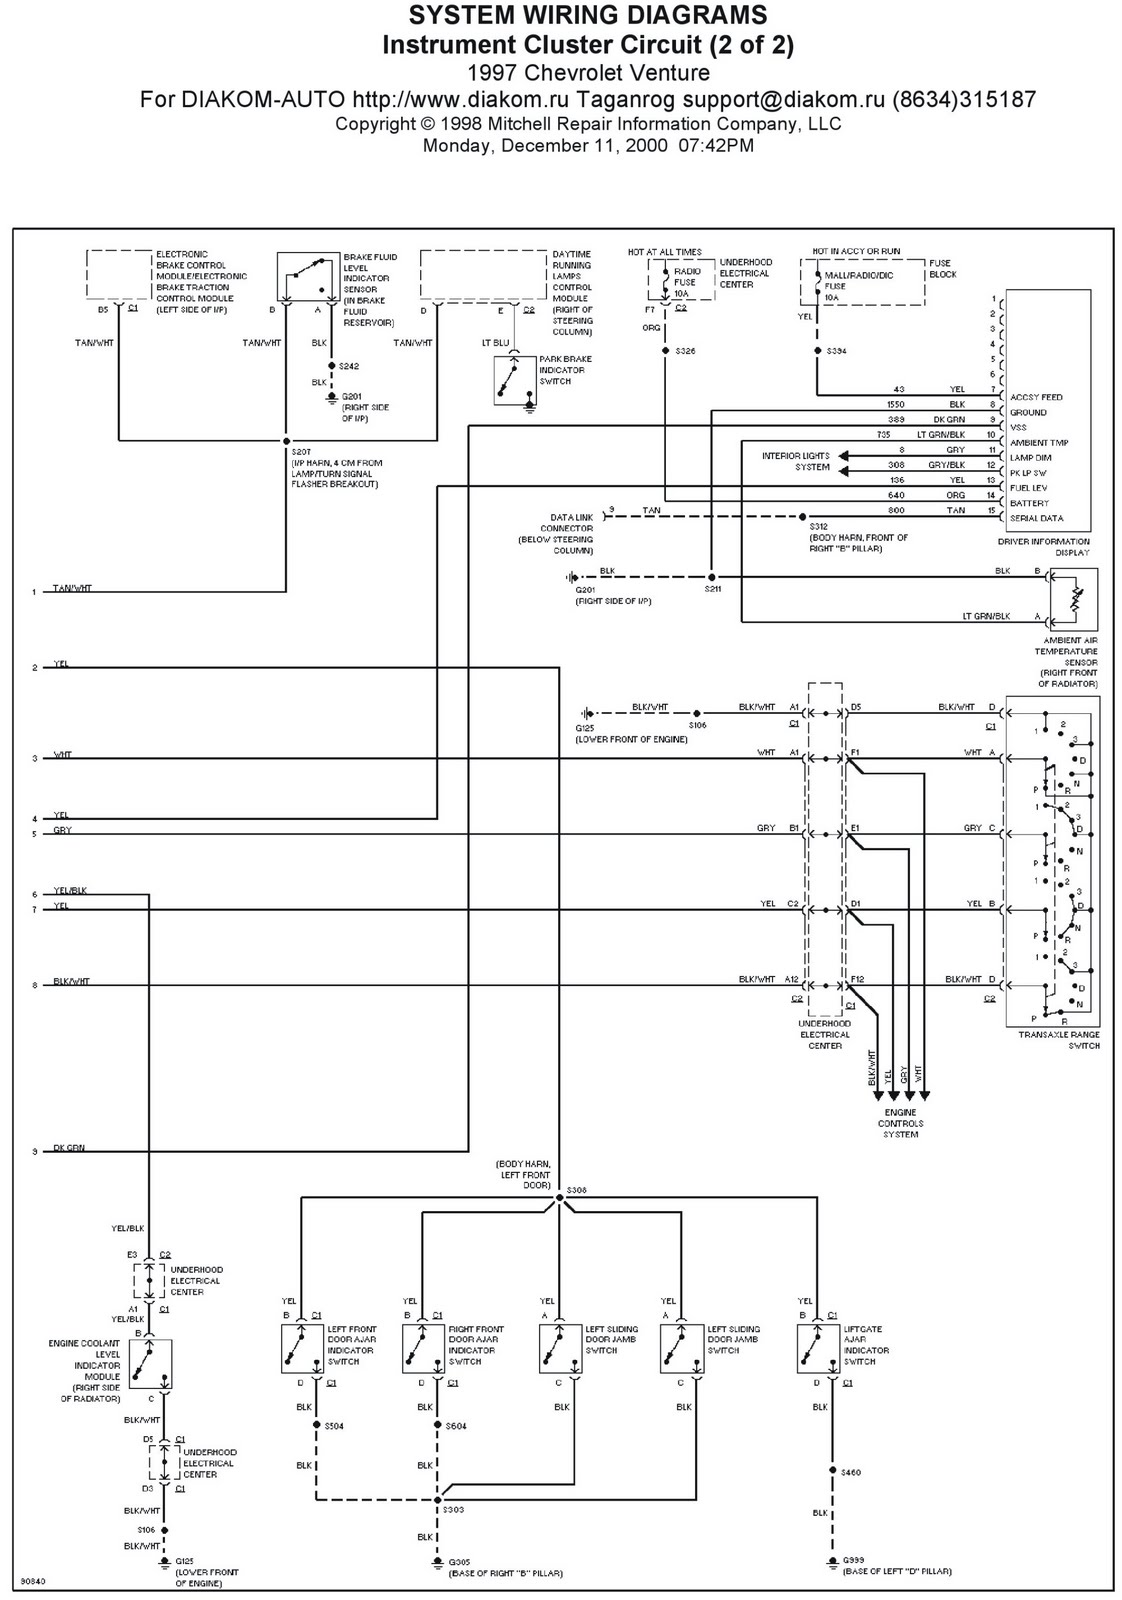 August 2011 Schematic Wiring Diagrams Solutions 1997 Pontiac Sunfire 2 4 Chevrolet Venture Instrument Cluster Circuit System Diagram Part